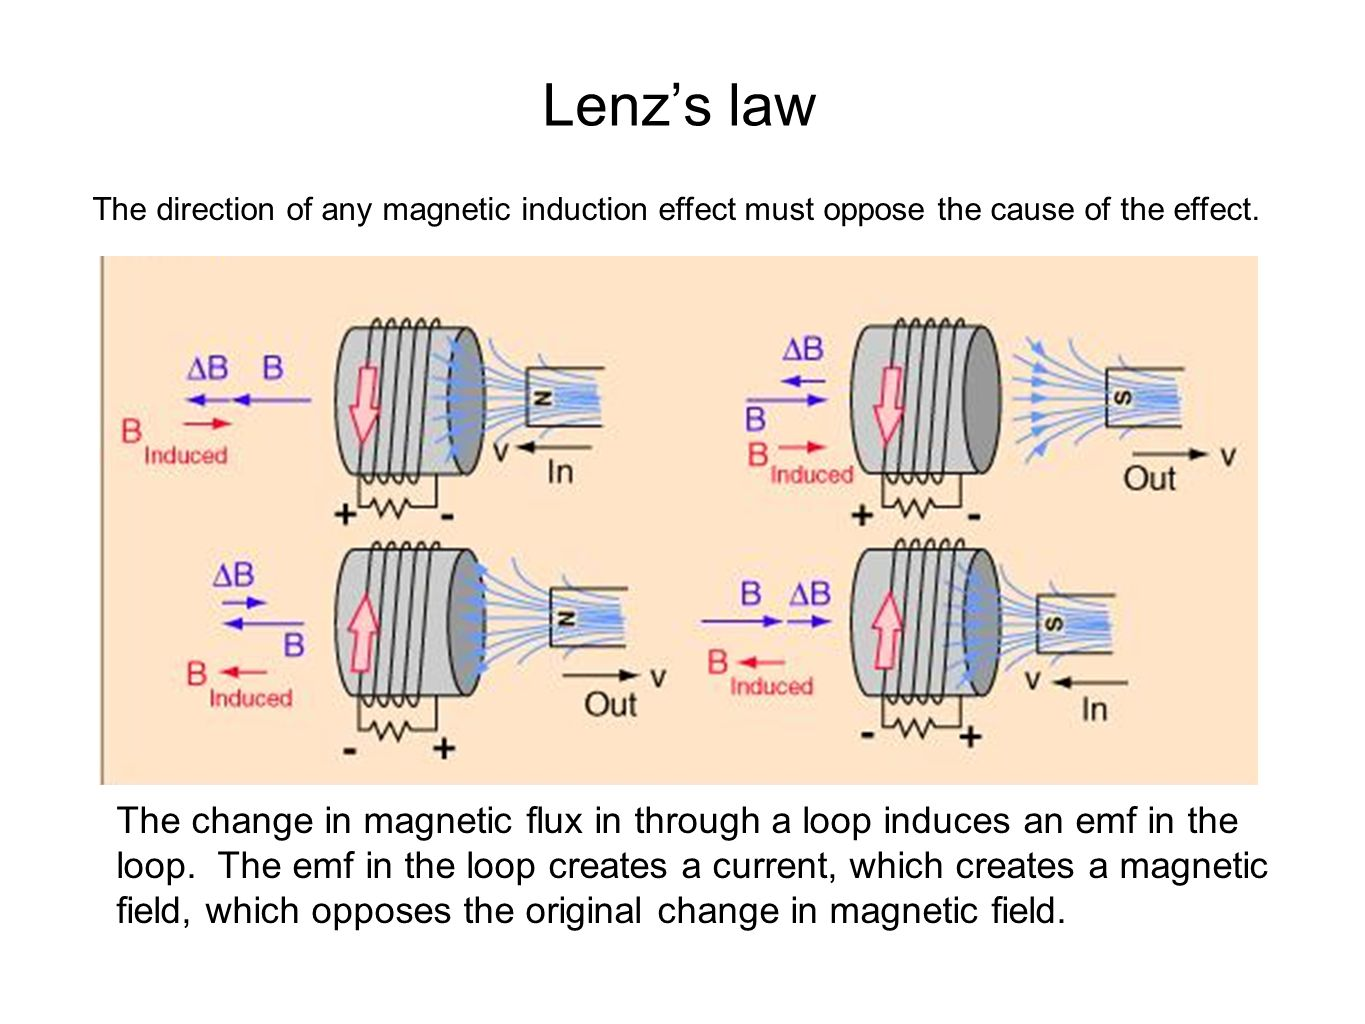 Magnetic fields and magnetic field induction 52